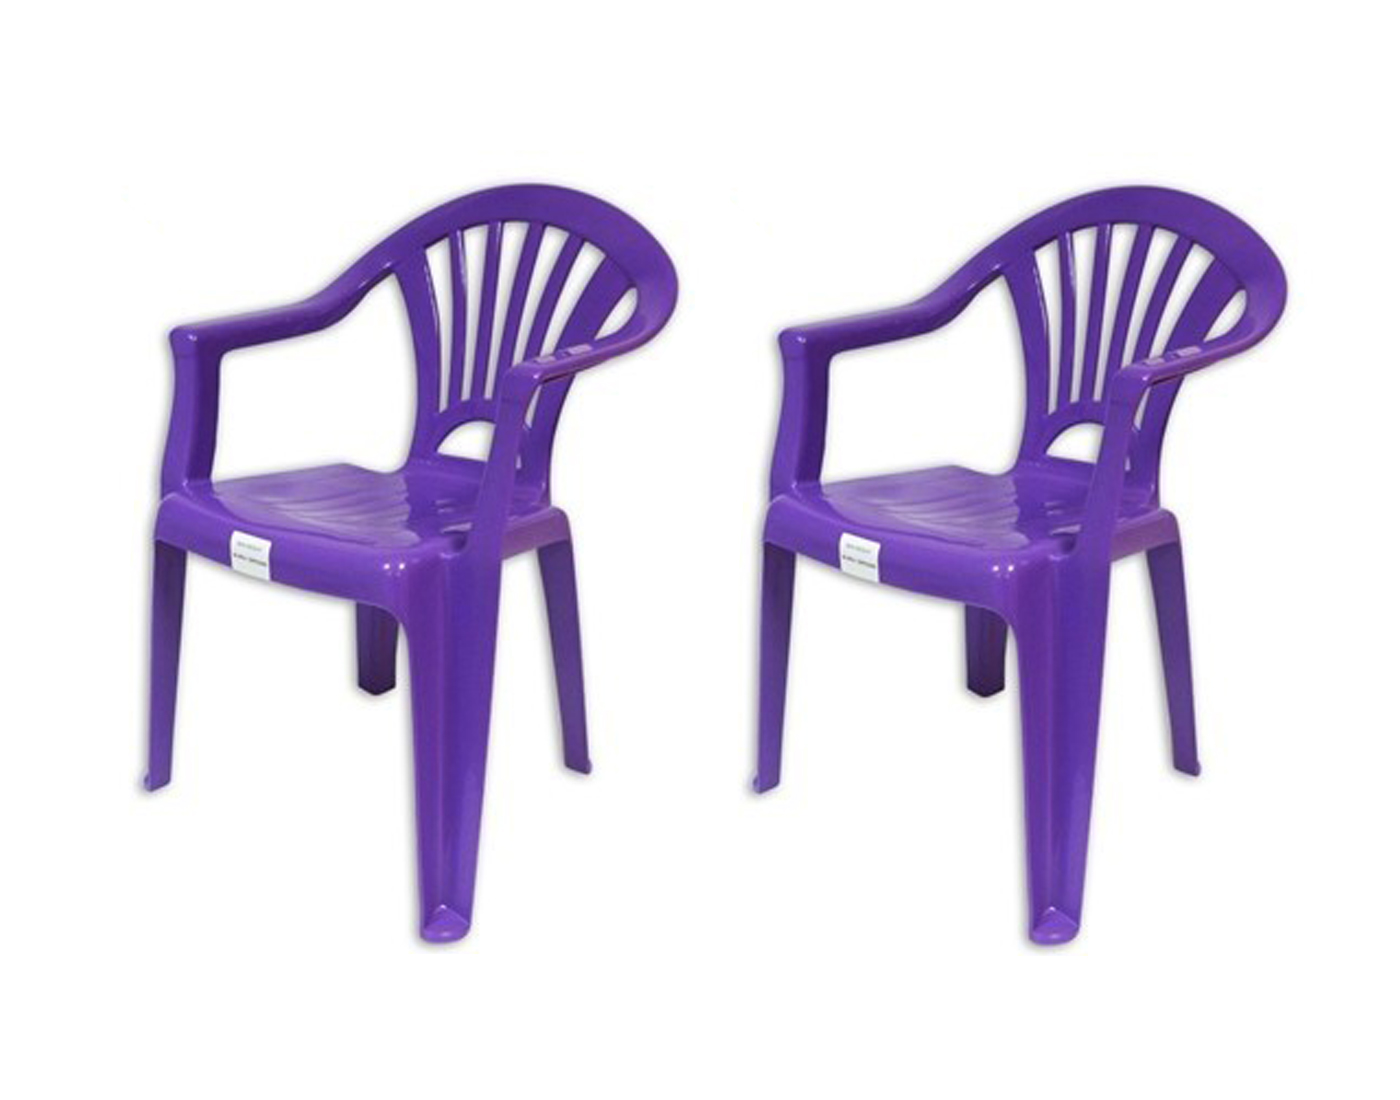 Plastic chairs stackable kids indoor or outdoor use purple for Kids plastic chairs